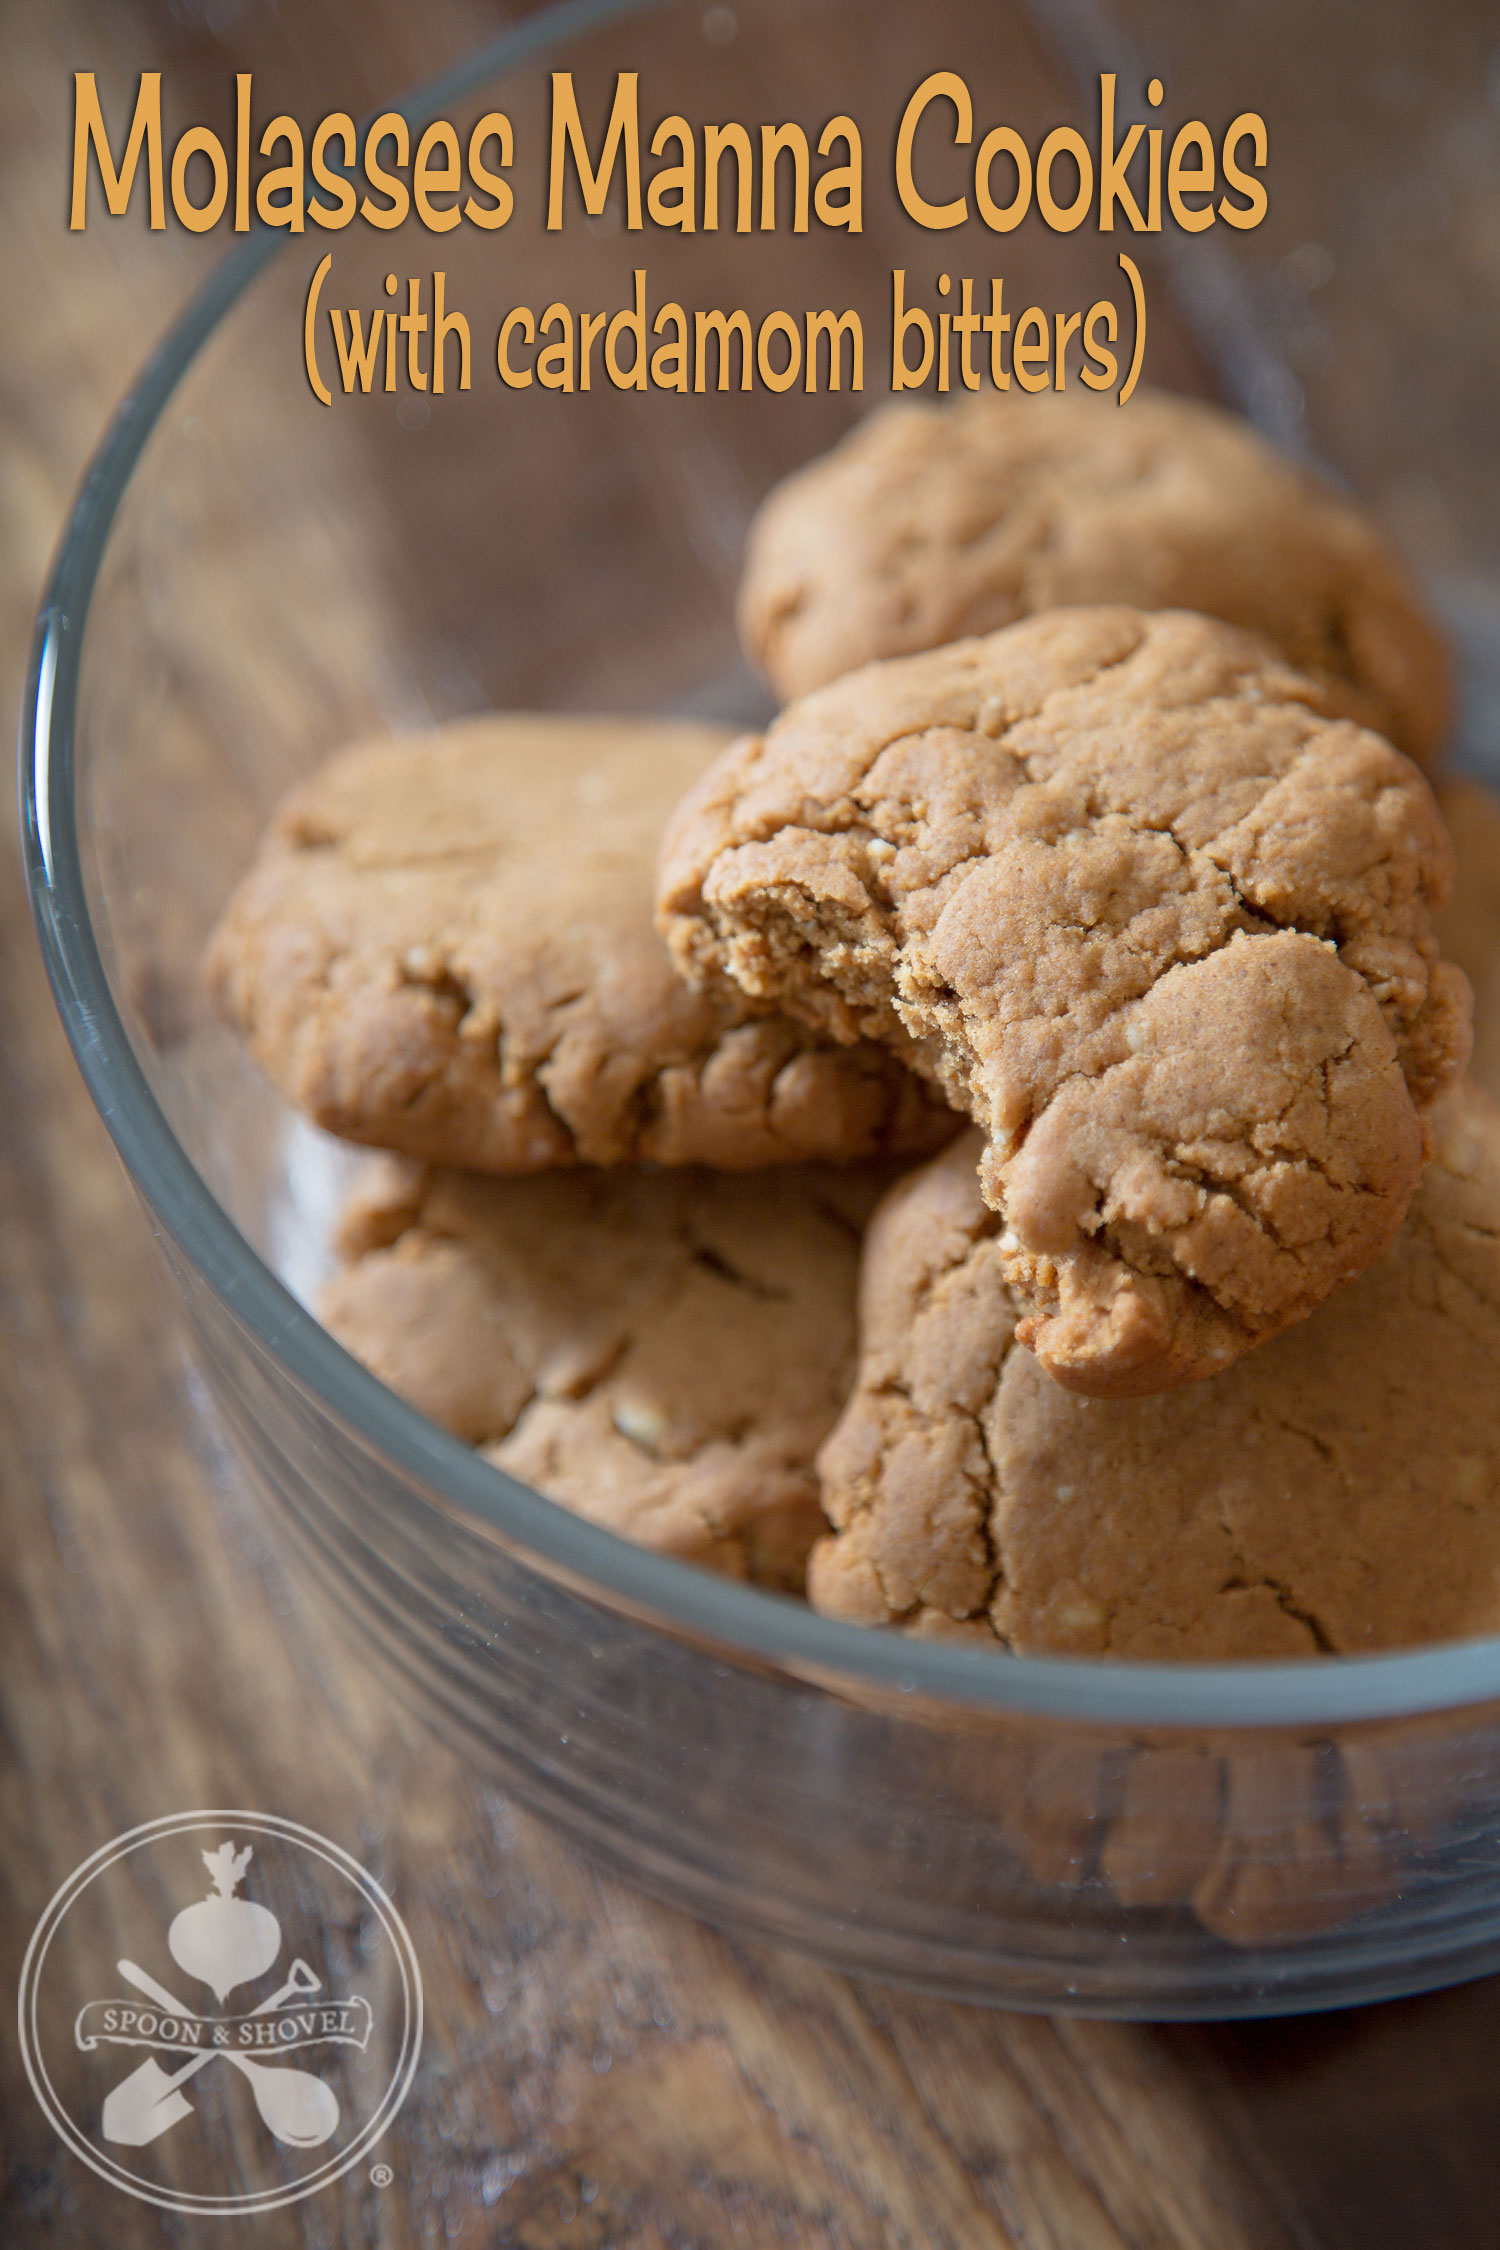 Molasses manna cookies with cardamom bitters from The Spoon + Shovel